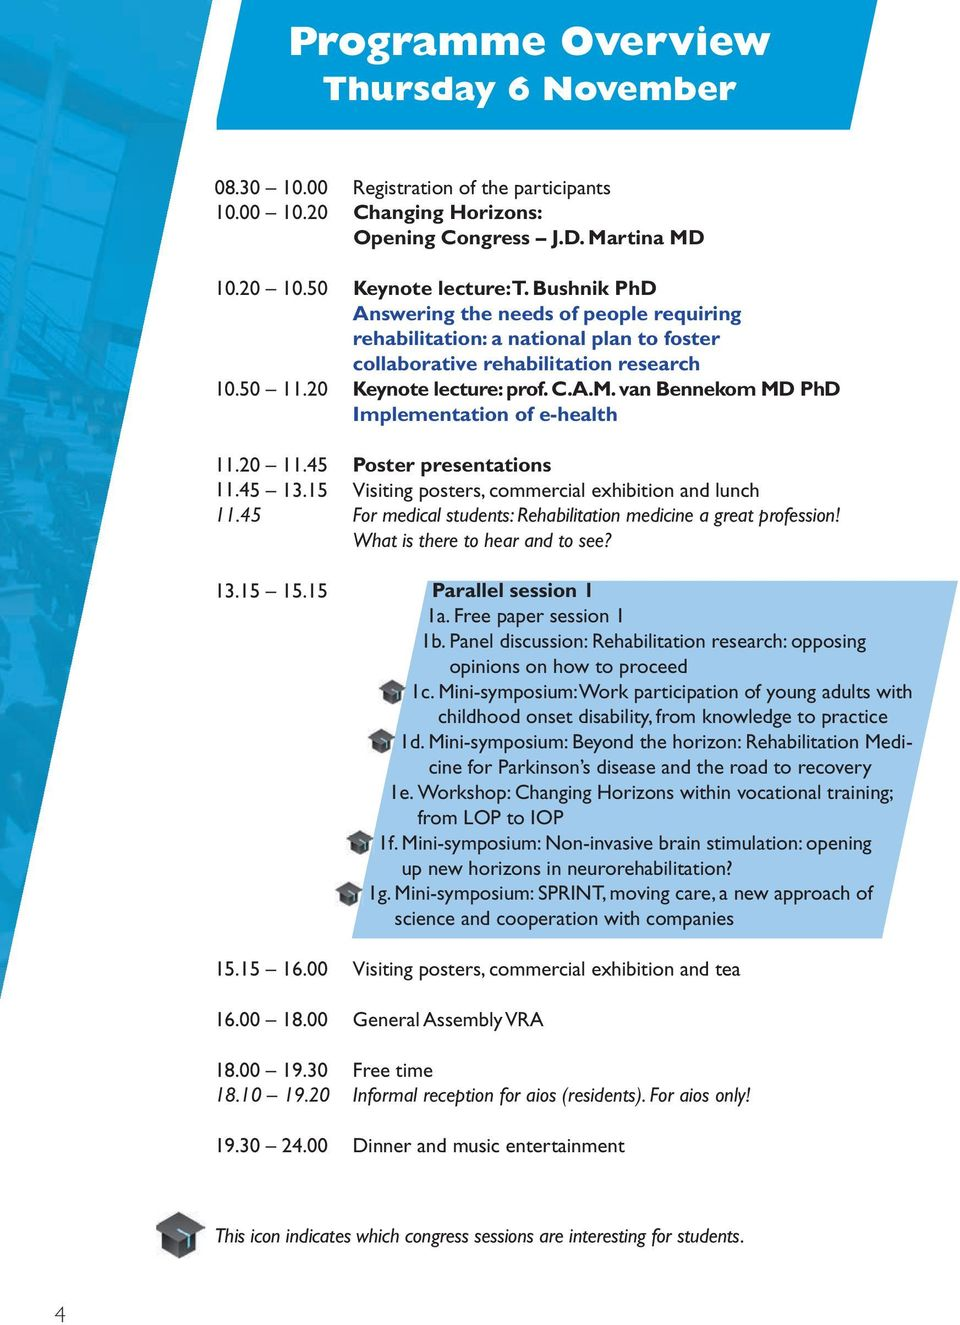 van Bennekom MD PhD Implementation of e-health 11.20 11.45 Poster presentations 11.45 13.15 Visiting posters, commercial exhibition and lunch 11.